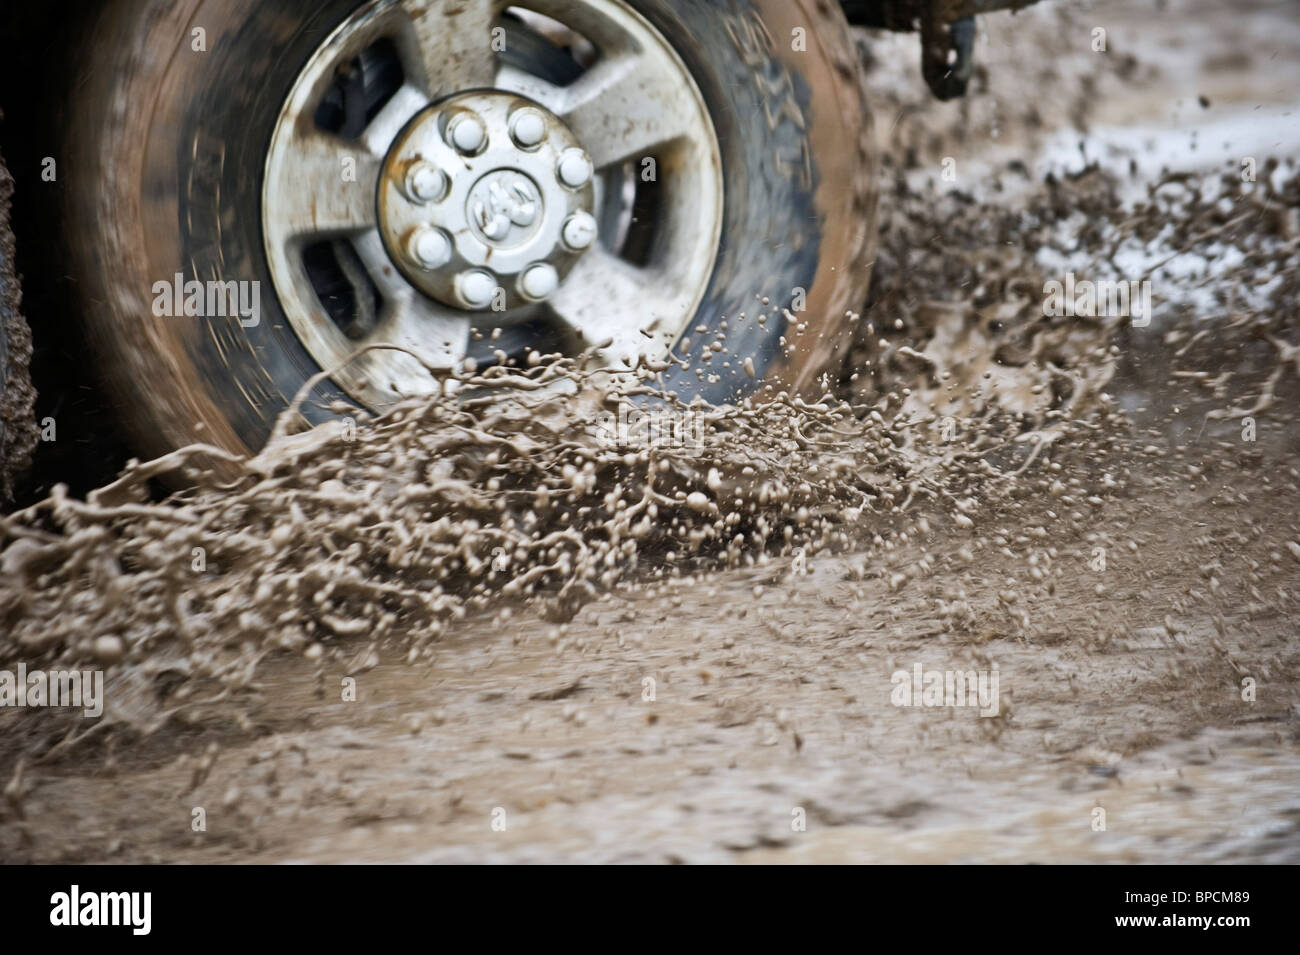 An image of a truck wheel and tire spinning through a mud hole. - Stock Image